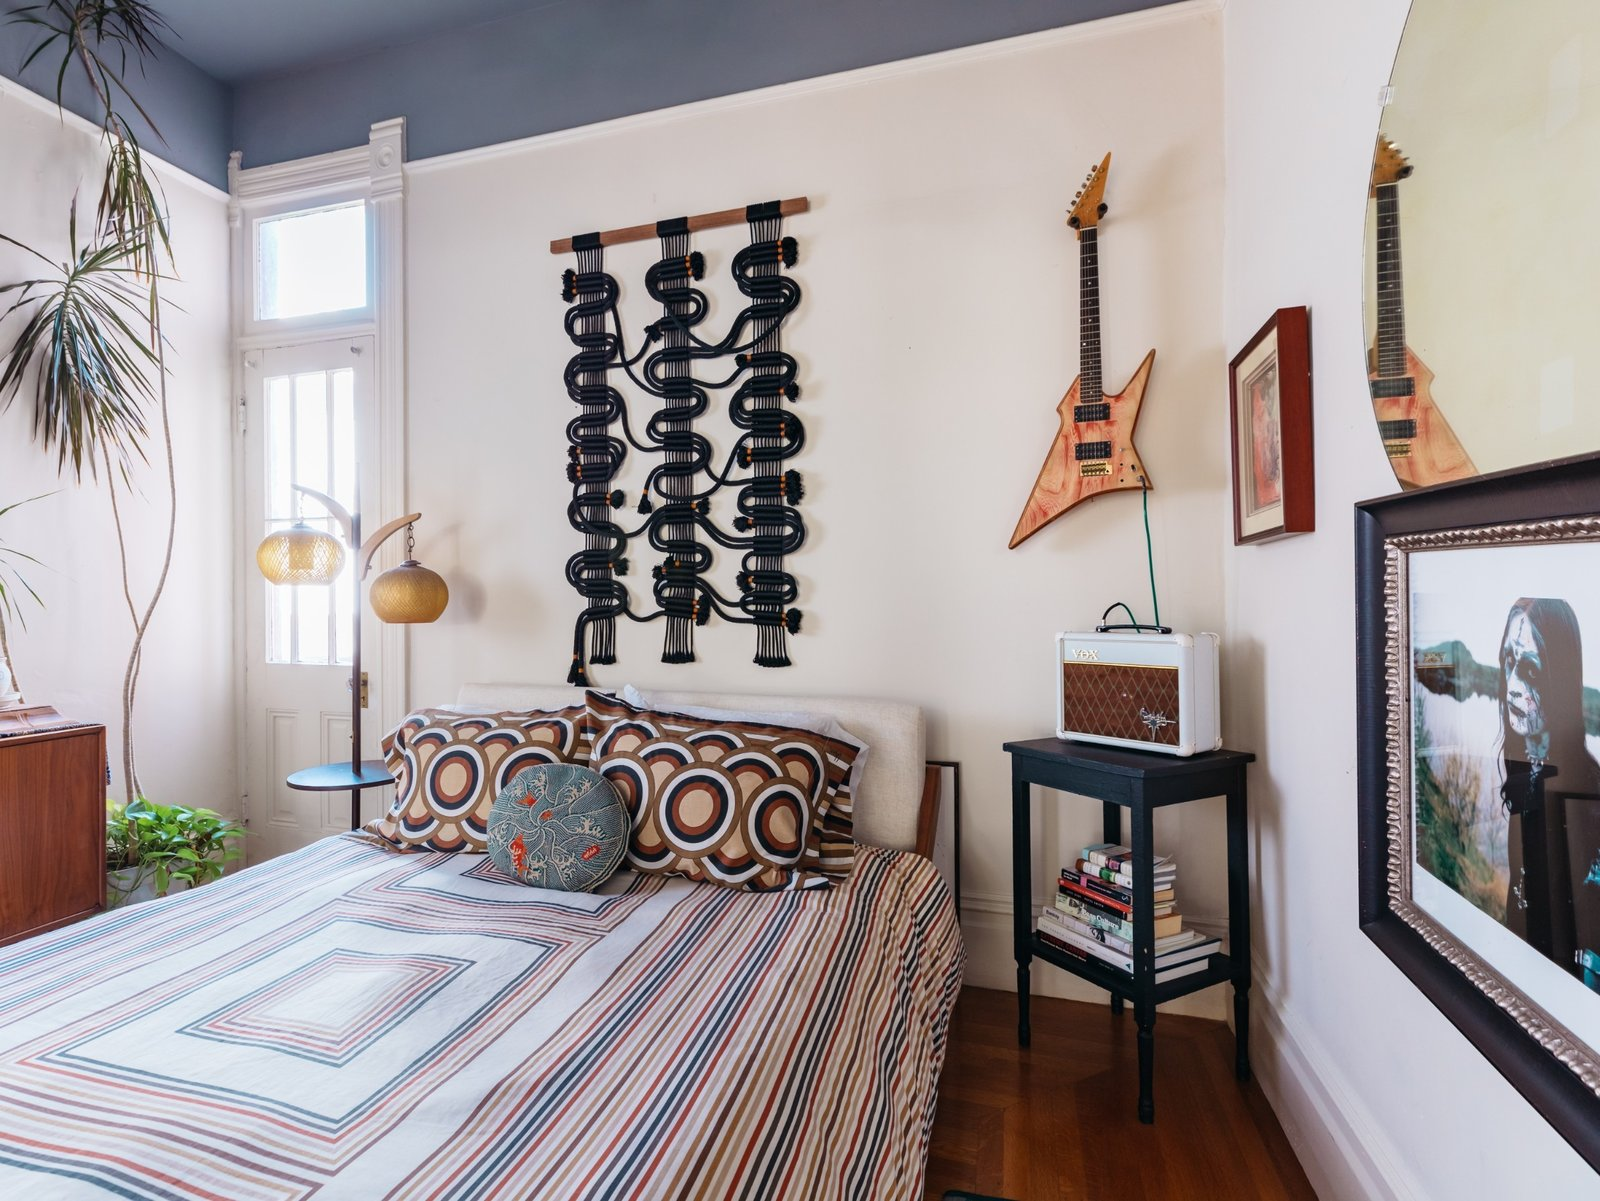 """The guest bedroom oozes retro vibes and features a """"circuit board"""" wall hanging by Windy. (Sothear Nuon)"""